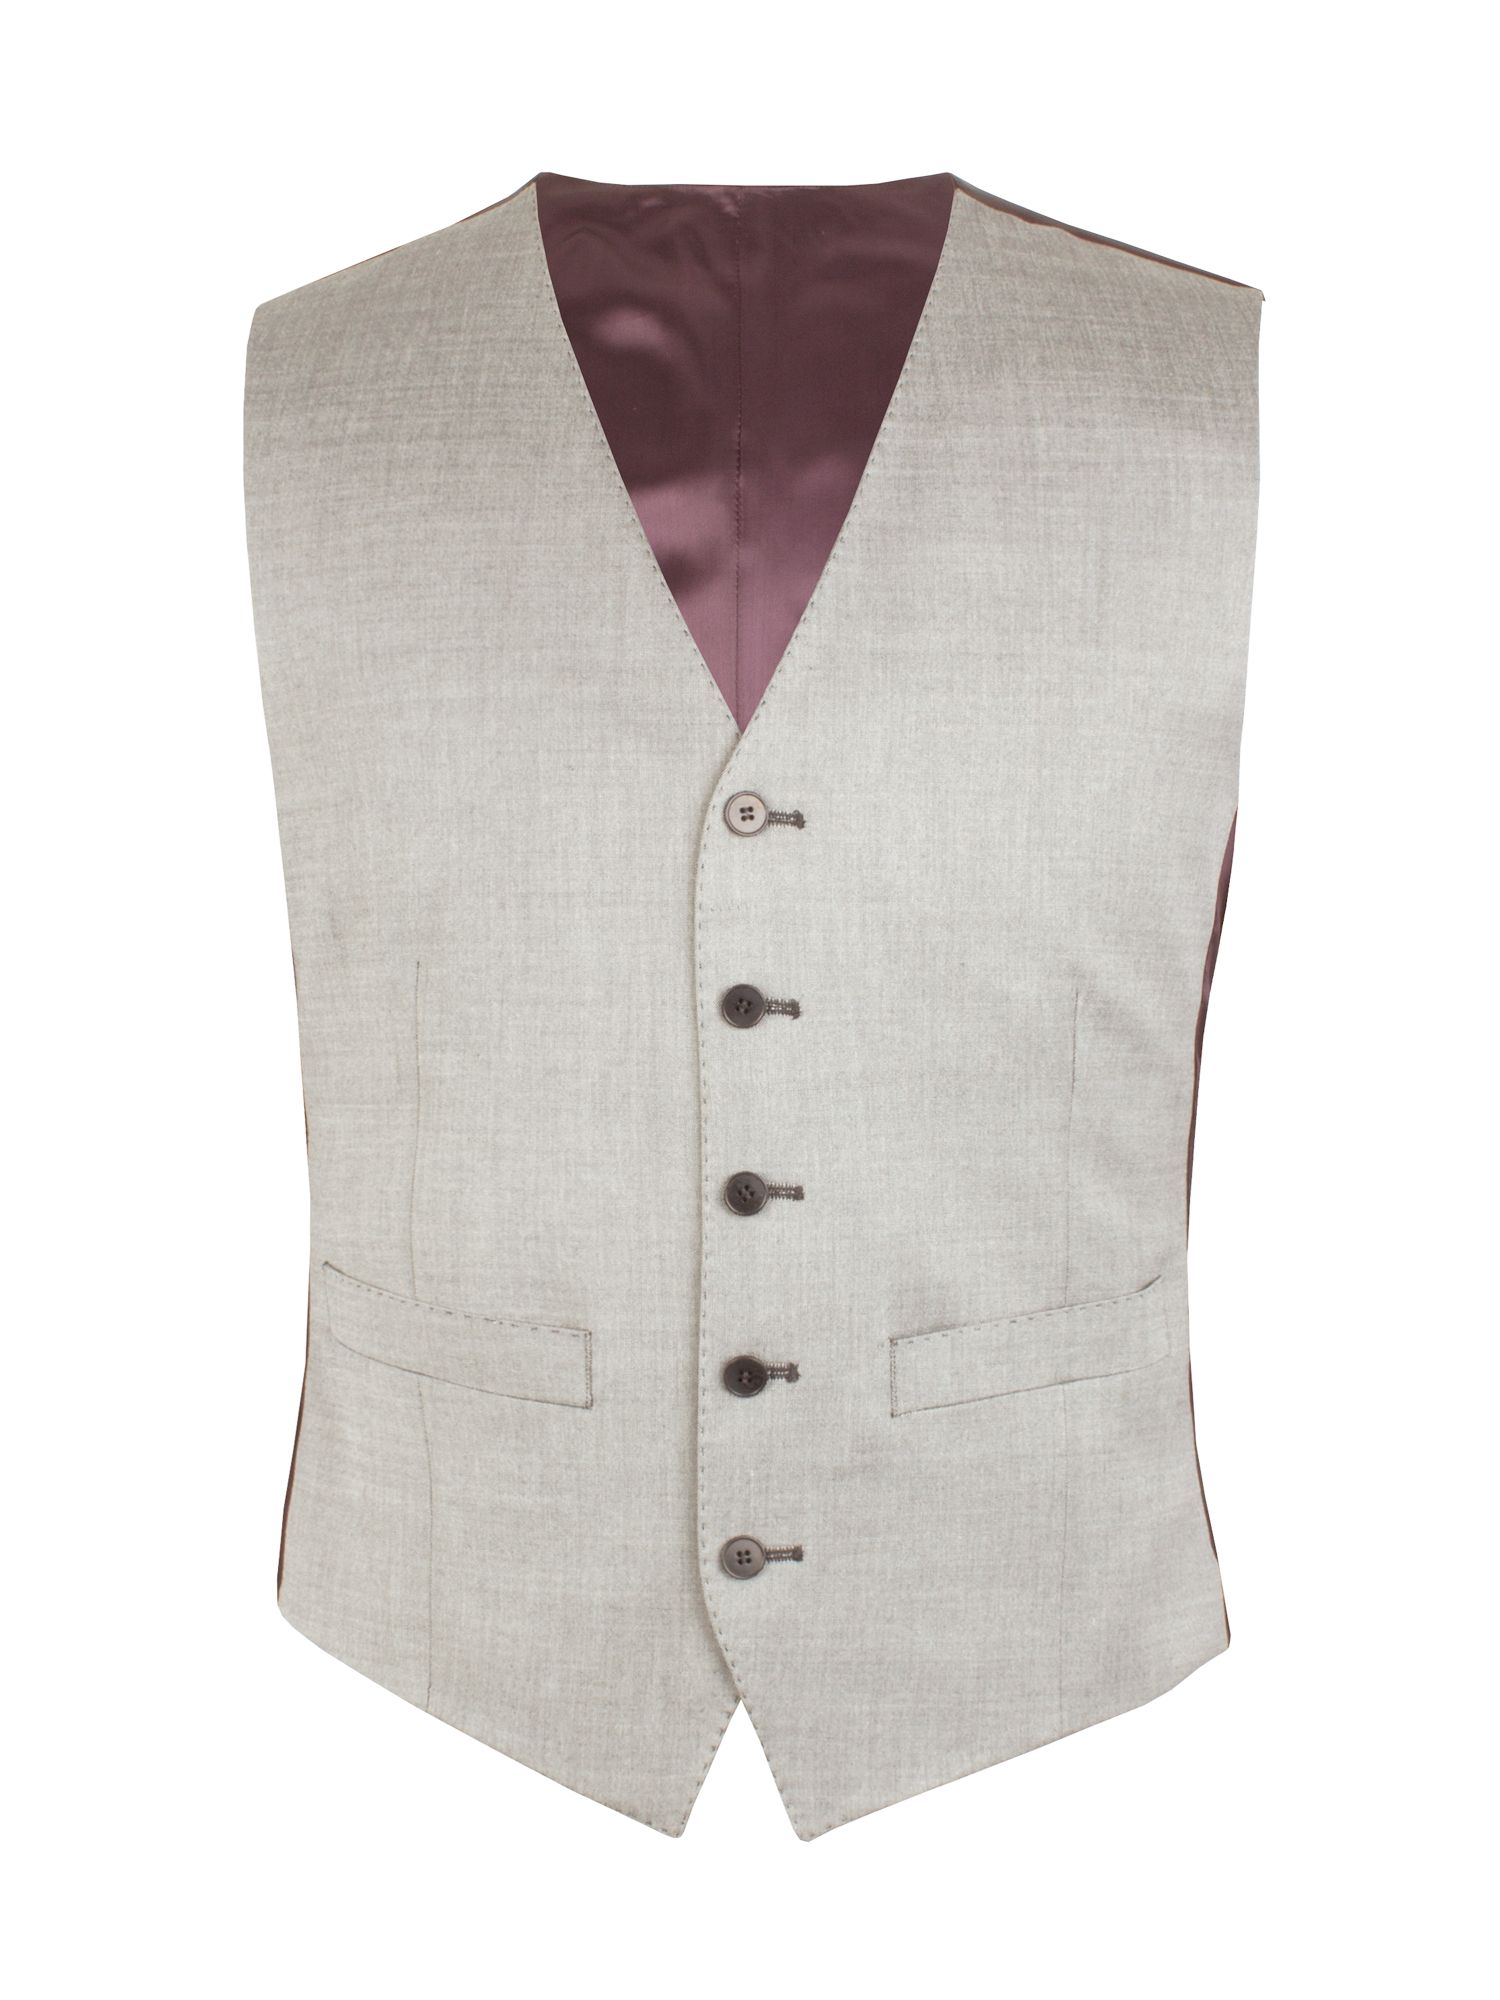 Mens Alexandre of England Tonic Tailored Fit Waistcoat $49.00 AT vintagedancer.com